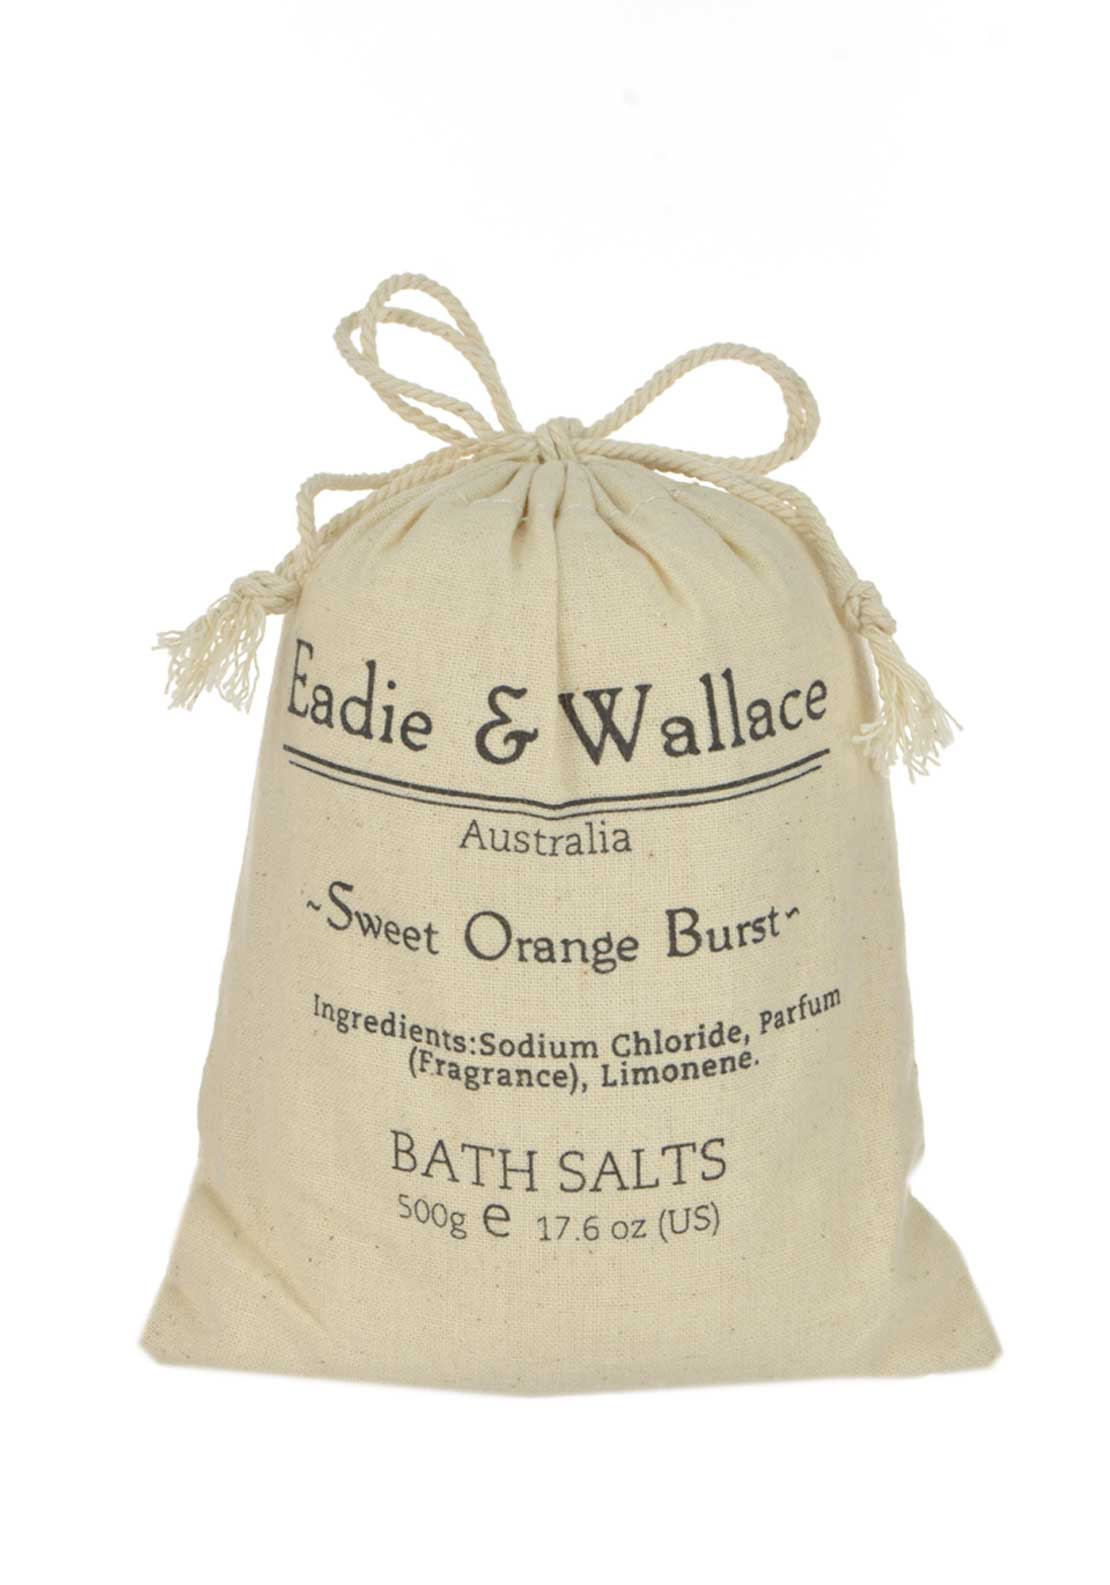 Eadie & Wallace Indulgent Bath Salts, Sweet Orange Burst